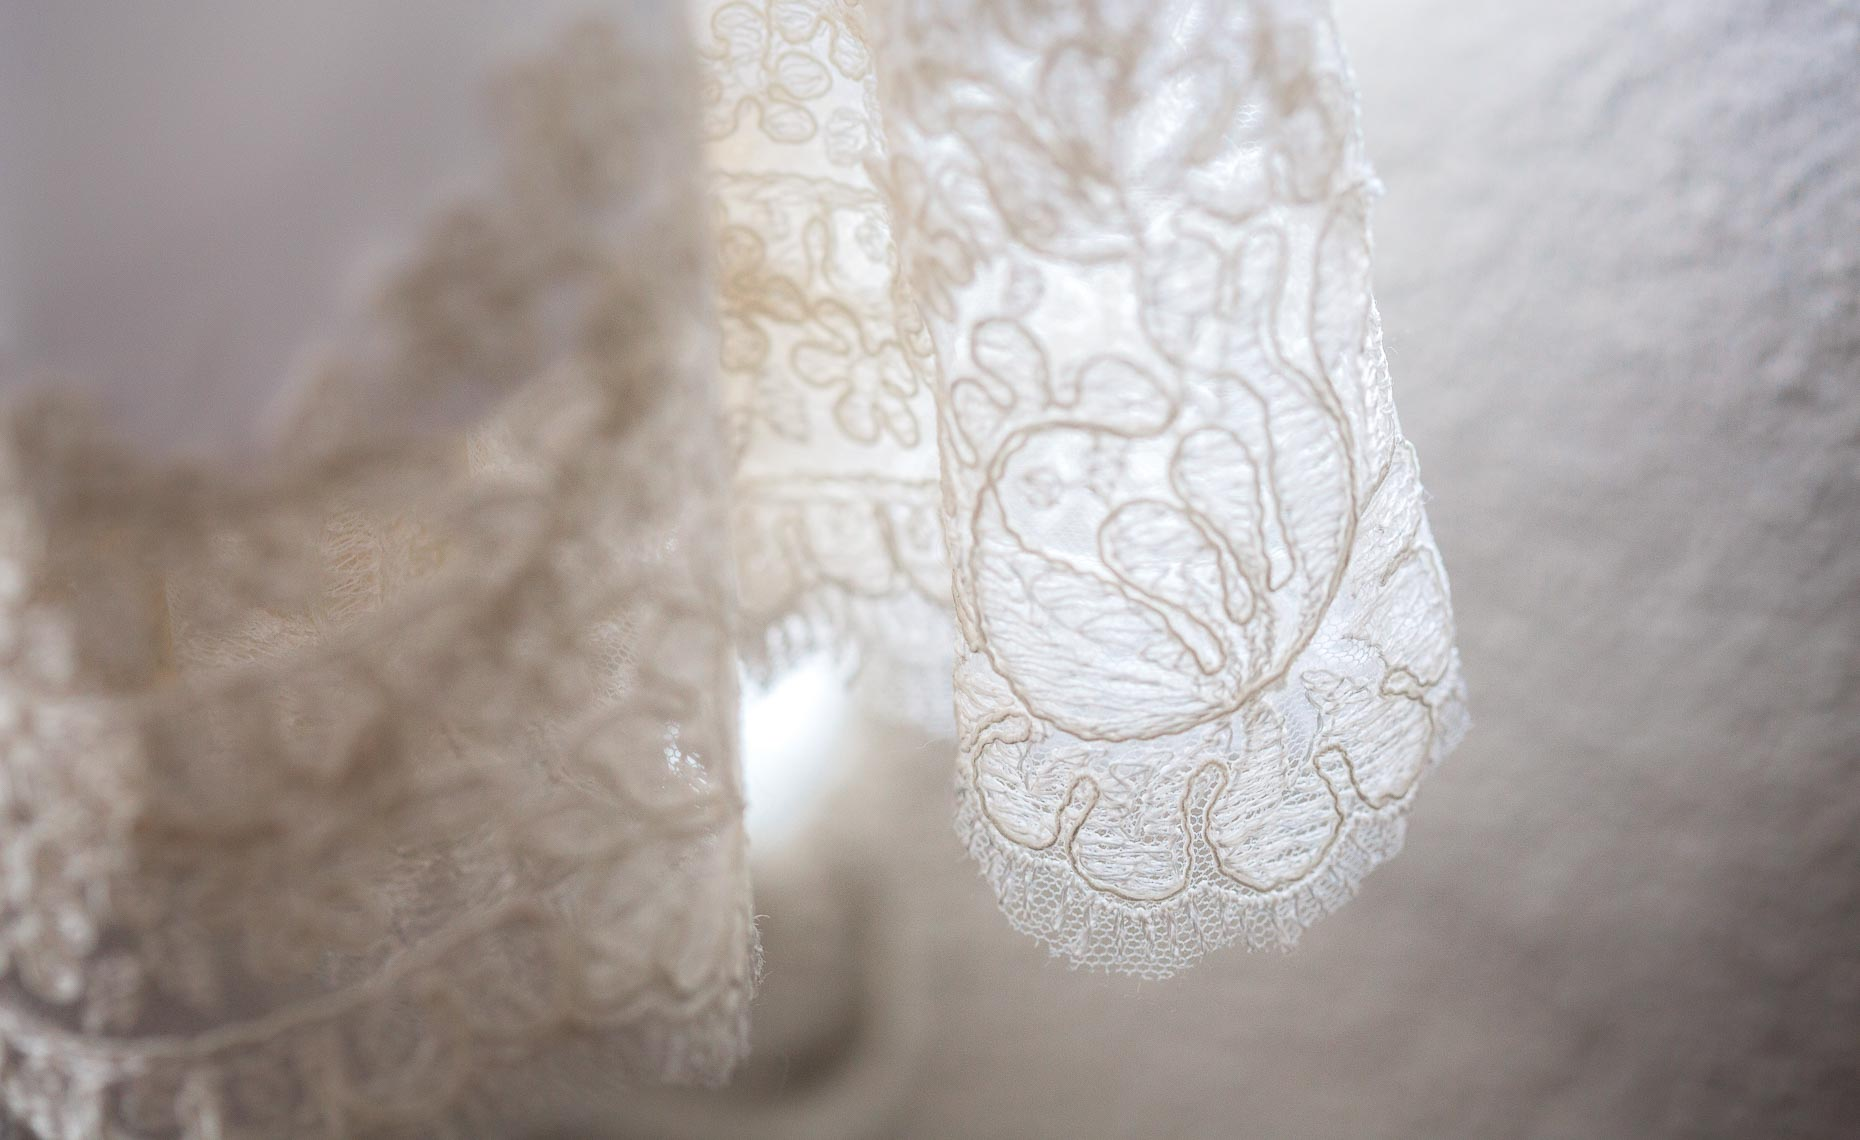 Wedding dress closeup from ceremony in whistler, British Columbia